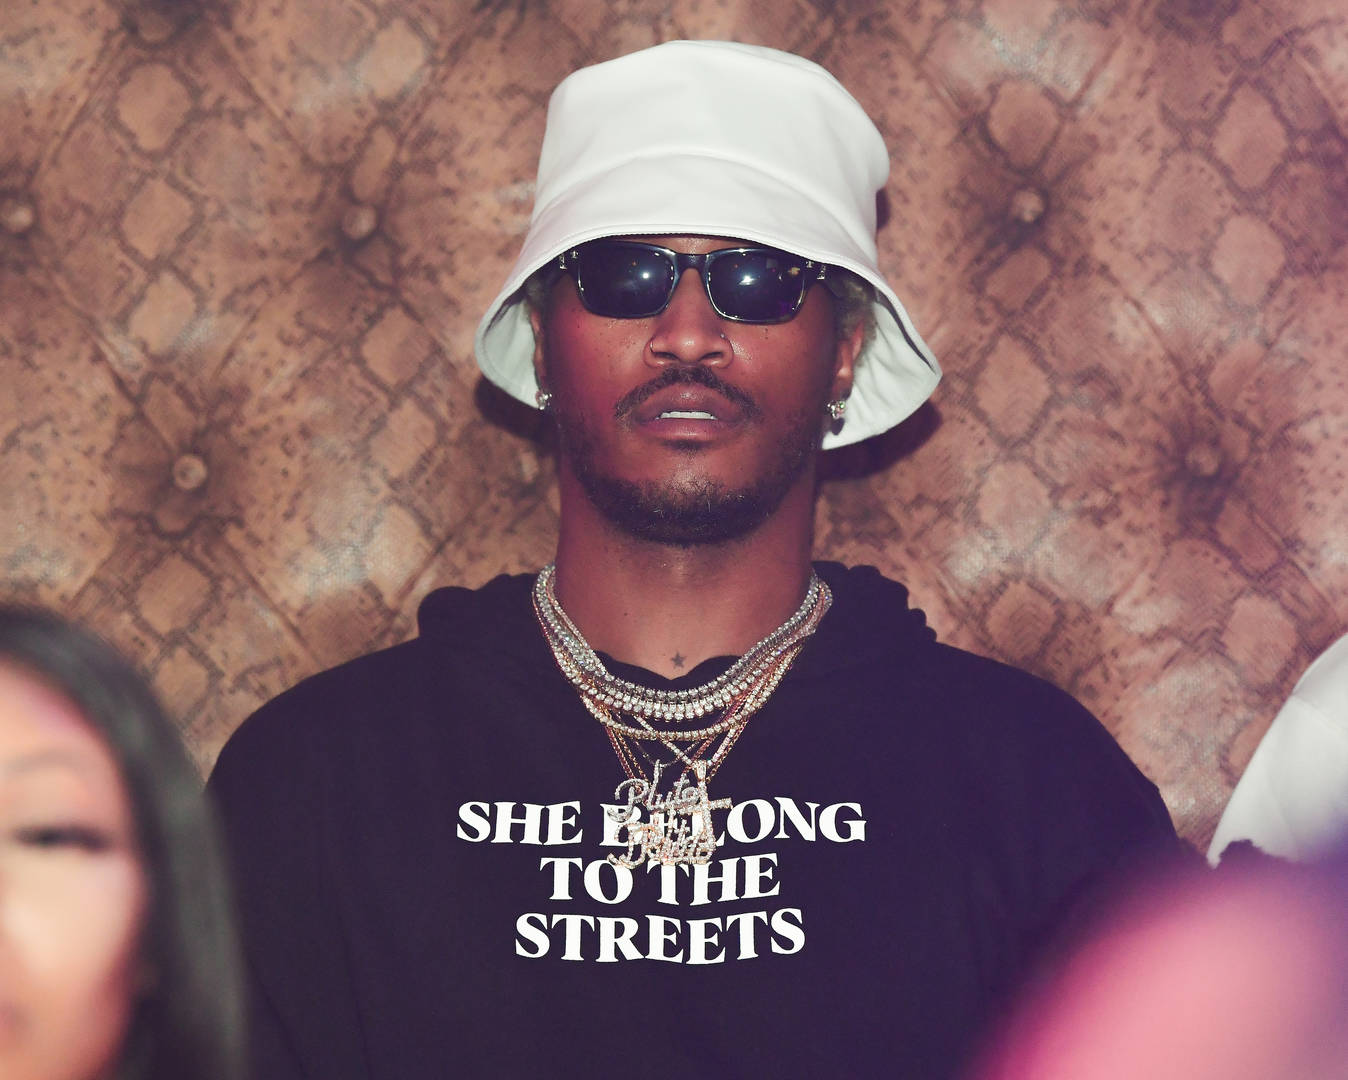 future belong to the streets